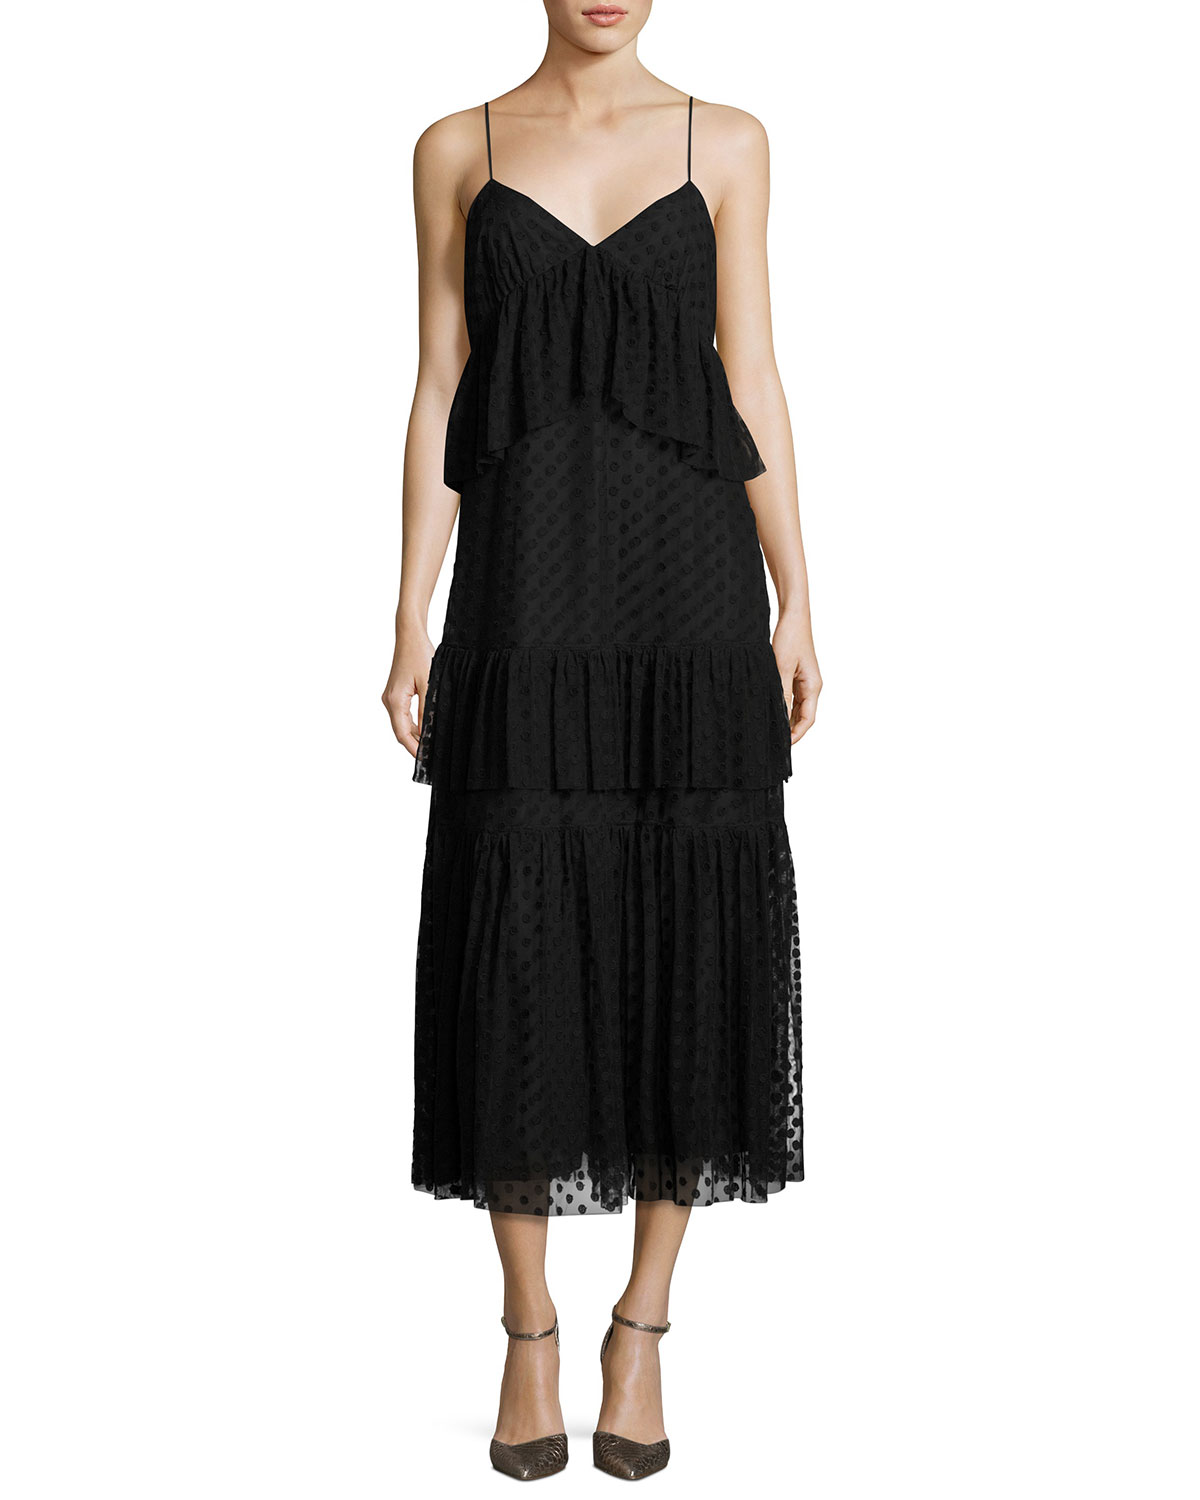 Sleeveless Polka-Dot Lace Tiered Dress, Black